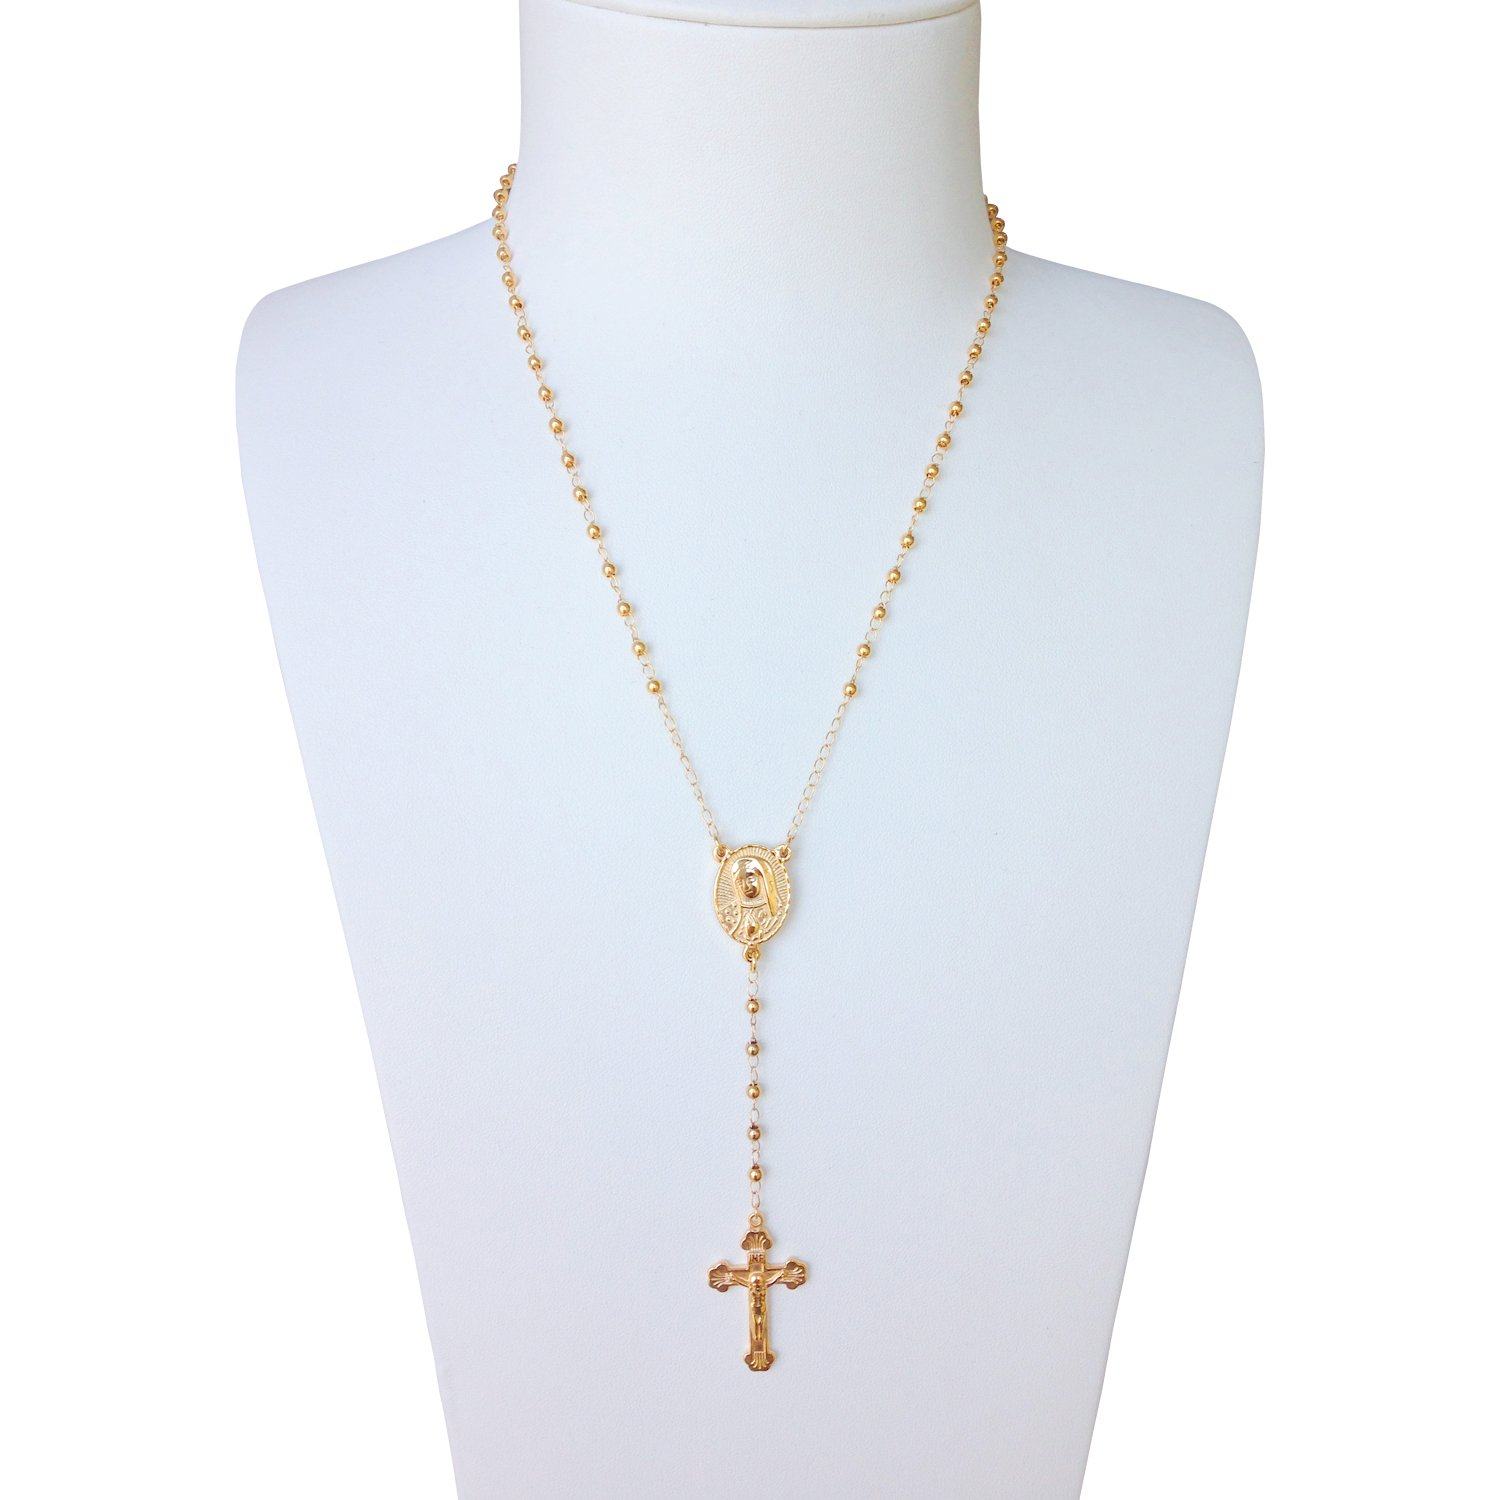 373dd5f4d9aeb Cheap Gold Rosary Necklace For Women, find Gold Rosary Necklace For ...